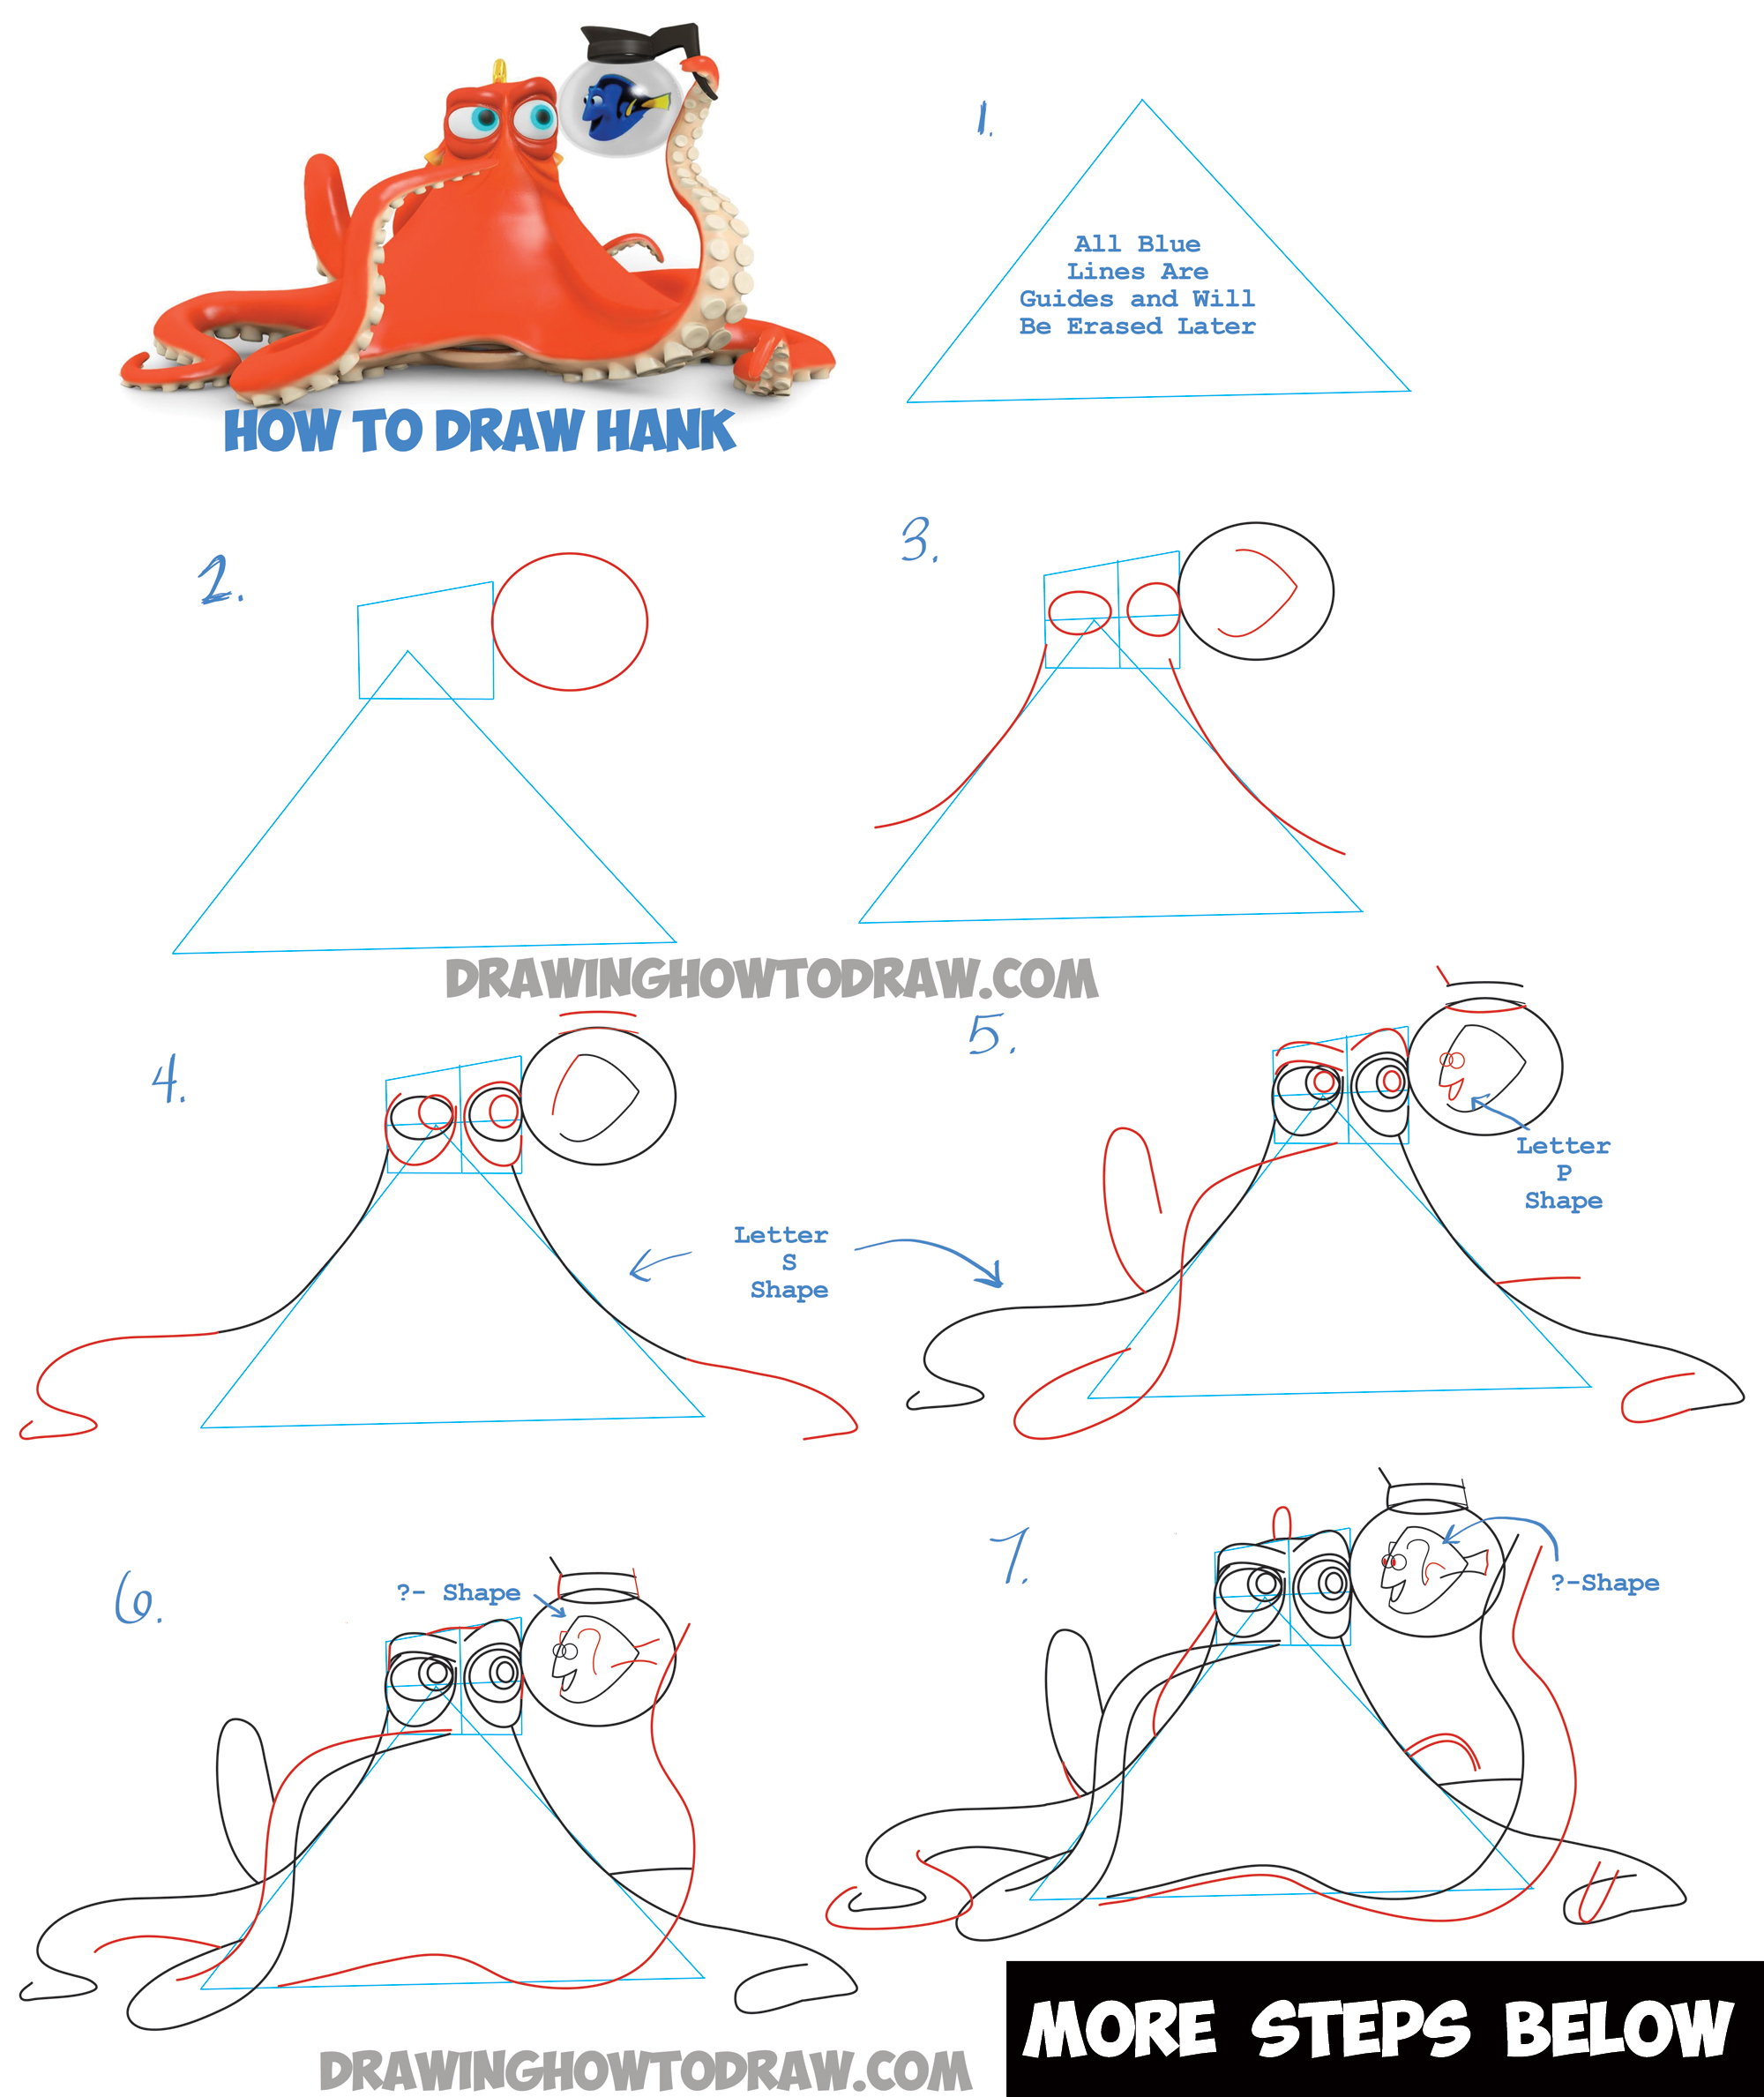 How to Draw Hank the Octopus and Dory from Finding Dory Step by